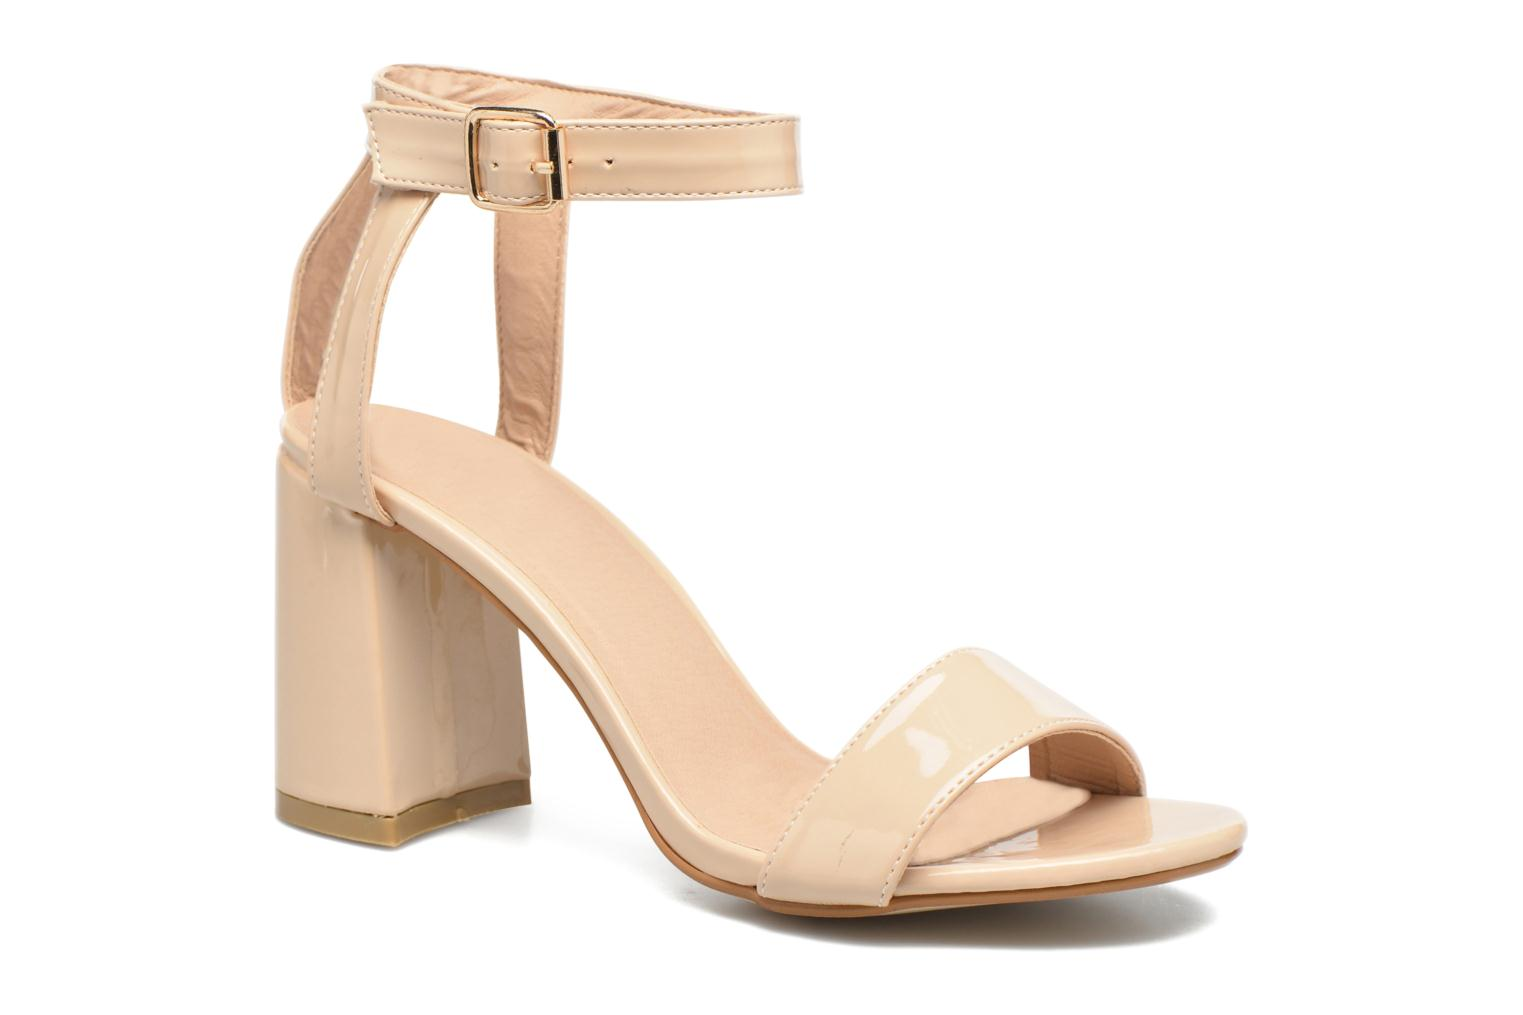 Marques Chaussure femme I Love Shoes femme BELYZE Nude patent